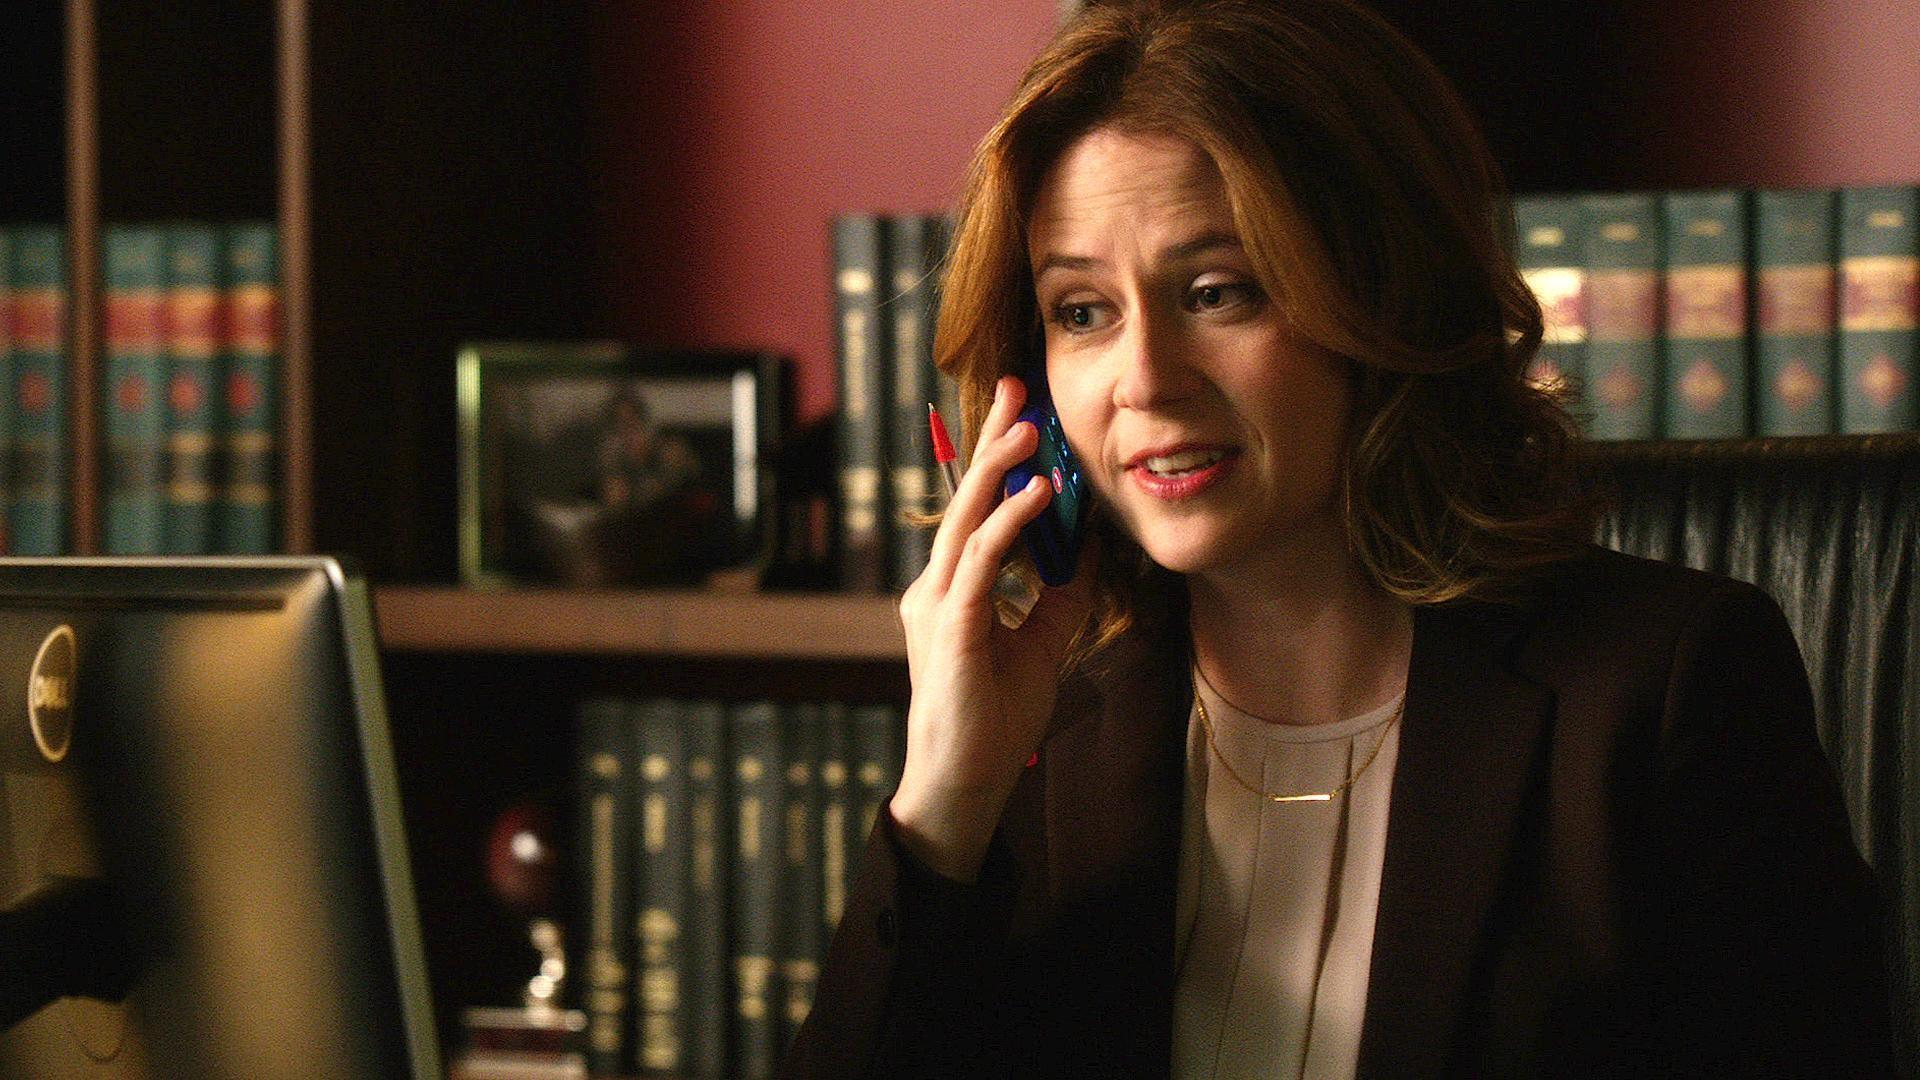 Jenna Fischer Has Two Very Different Roles on NBC